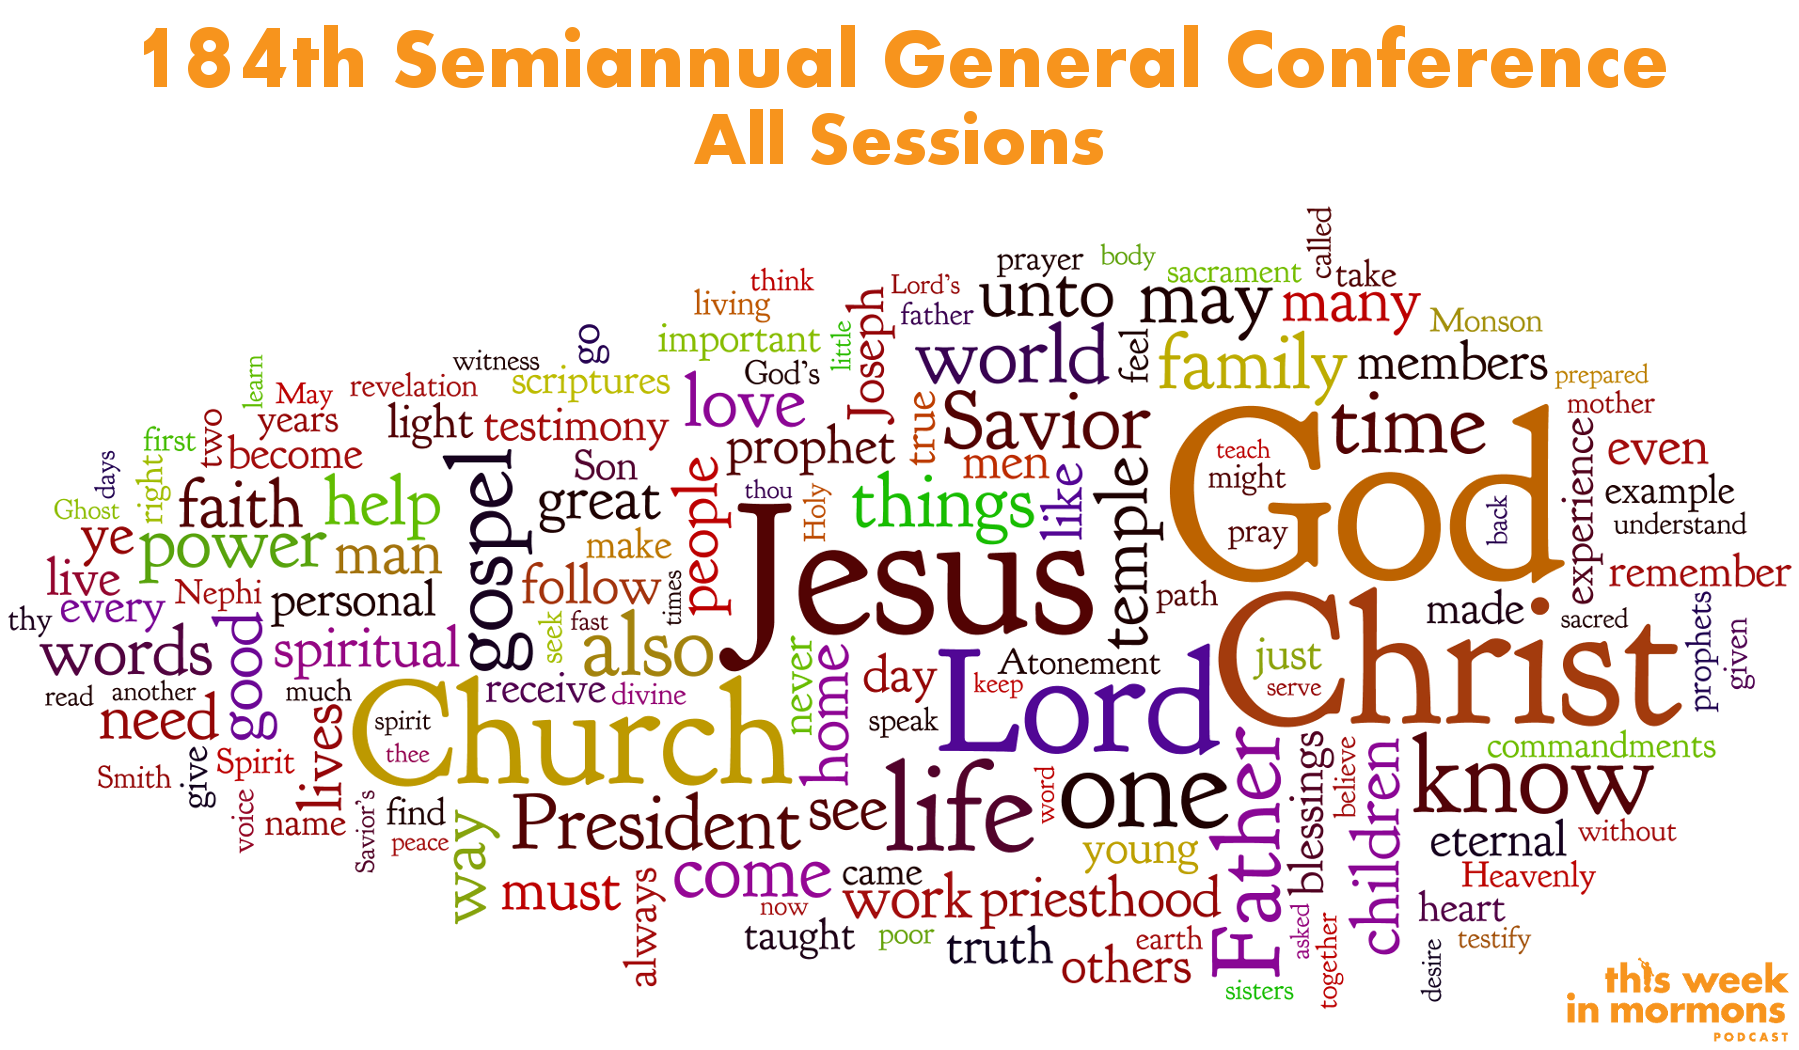 All SessionsLDSCONF2014